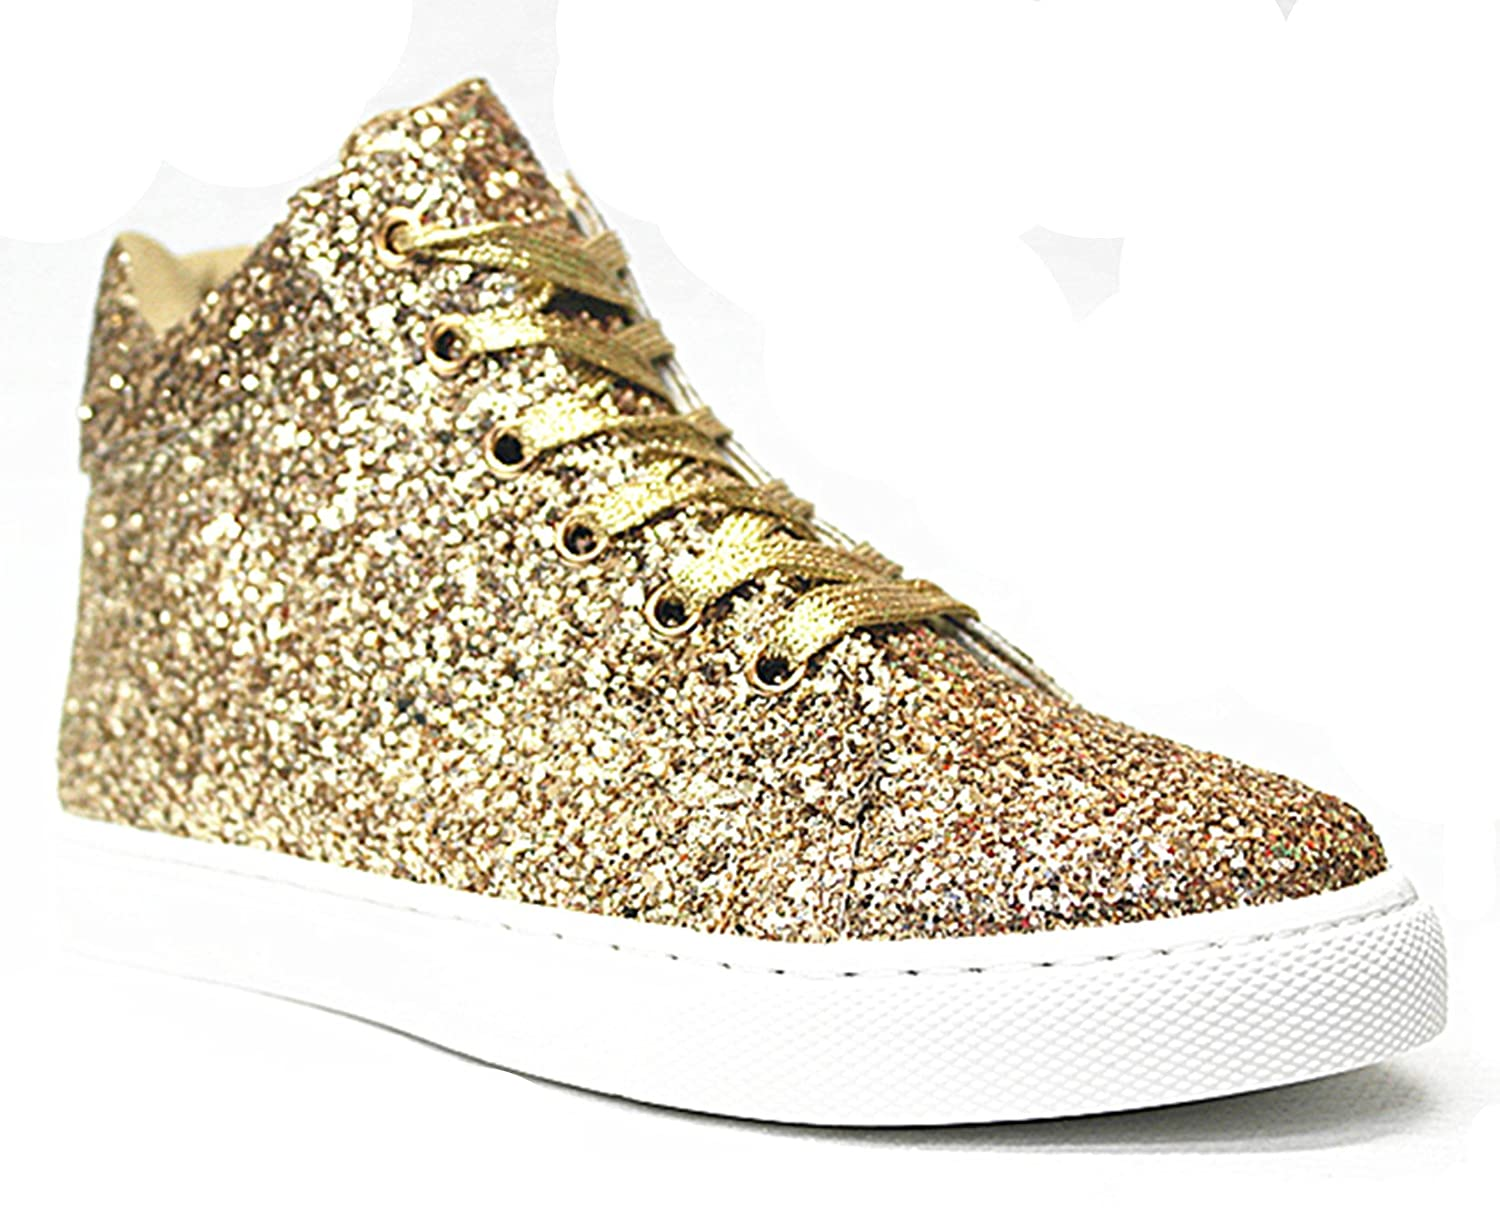 SF Forever Link Remy-18 Women's Jogger Sneaker-Lightweight Glitter Quilted Lace up Shoes New B07BJC6YGX 7.5 B(M) US|Gold-27